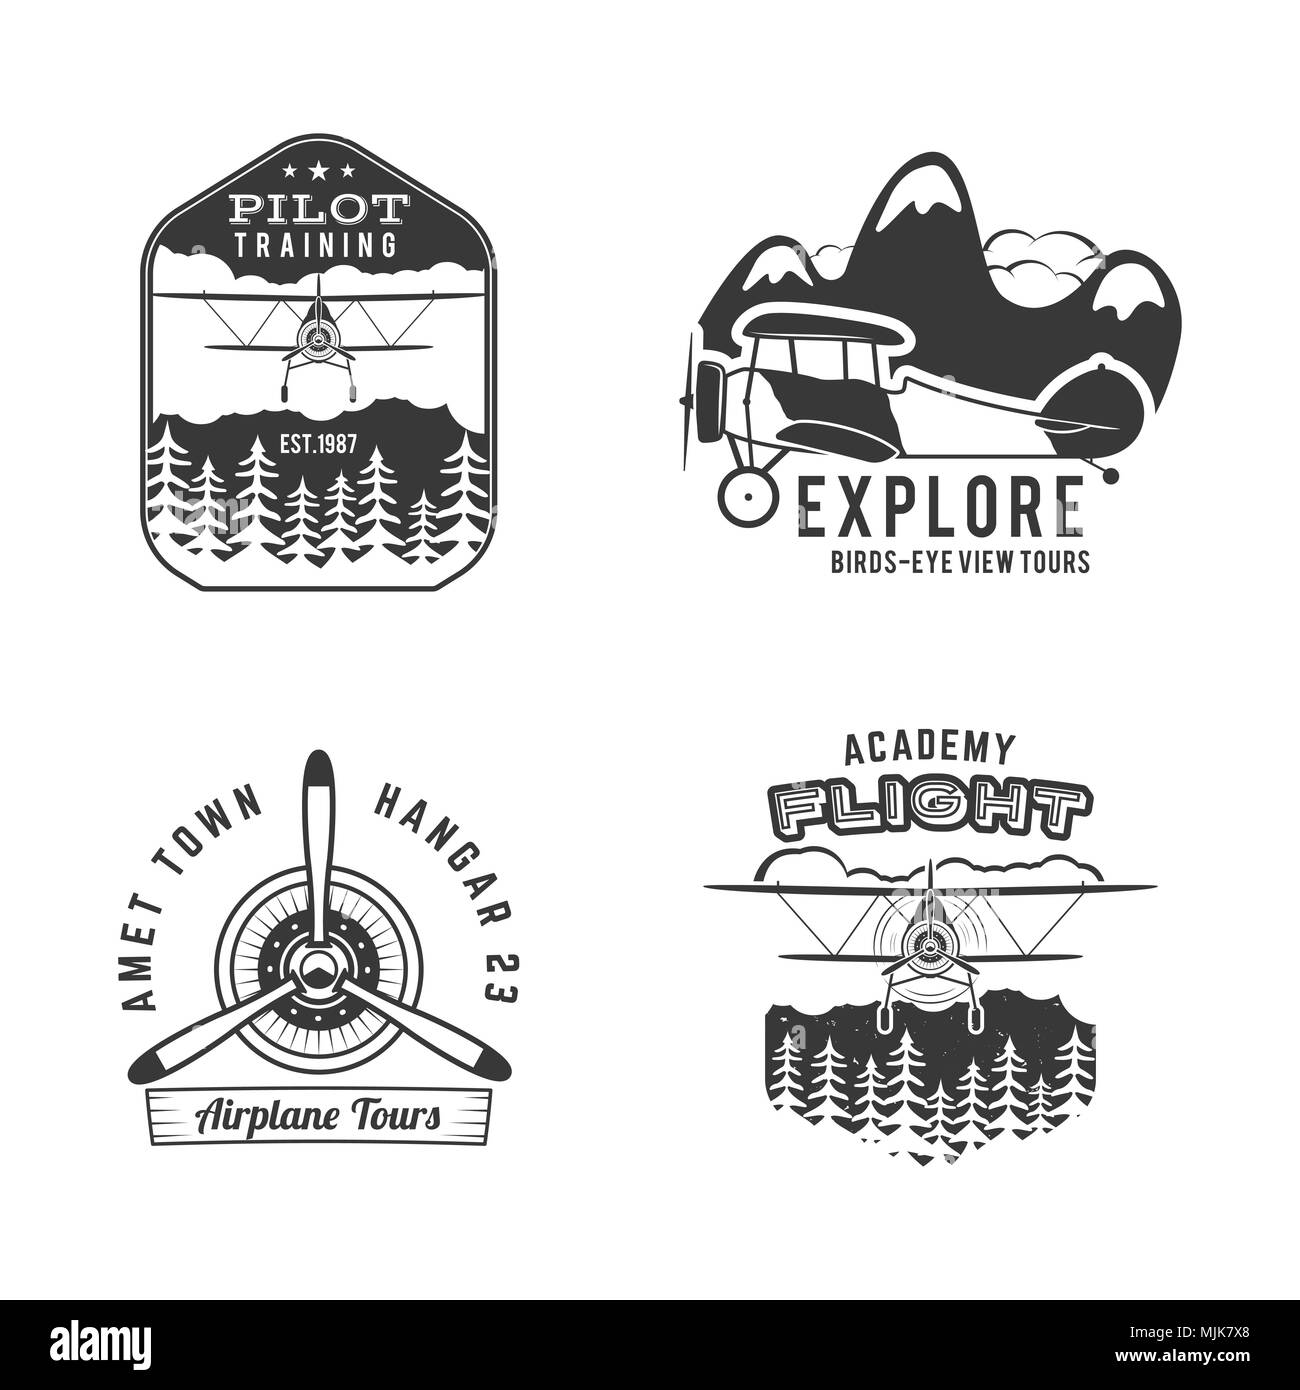 Vintage hand drawn old fly stamps. Travel or business airplane tour emblems. Airplane logo designs. Retro aerial badge isolated. Pilot school logos. Plane tee design, prints. Stock isolated - Stock Image